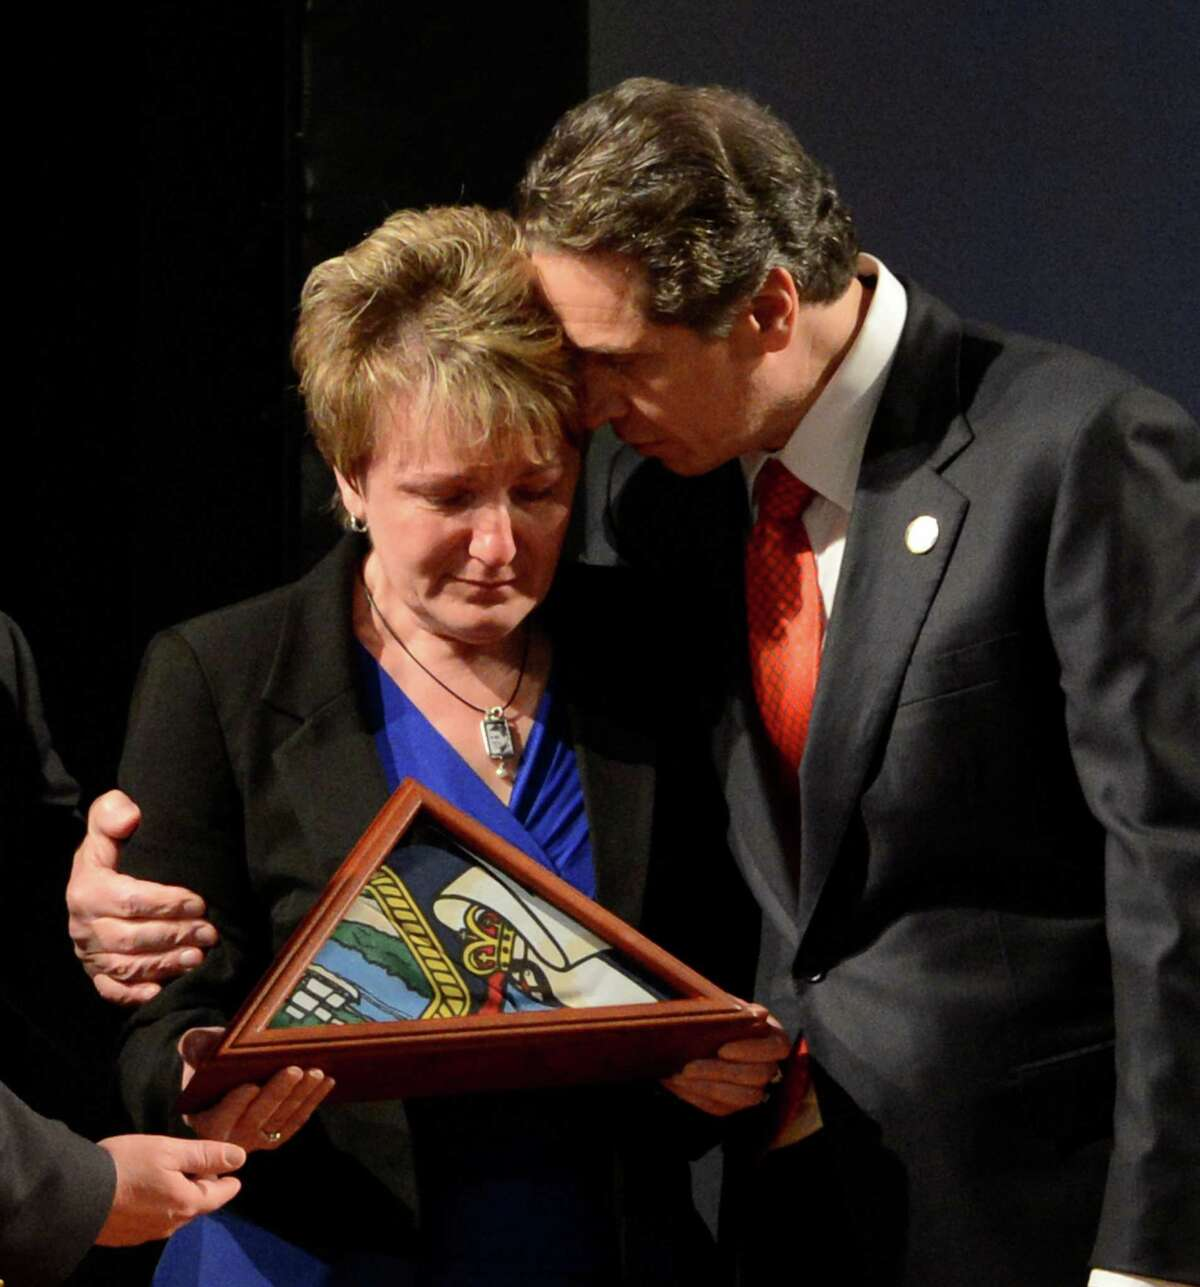 Governor Andrew Cuomo consoles deceased firefighter Thomas Kaczowka's mother Janina Kaczowka before his State of the State address Jan. 9. 2013 in Albany, N.Y. Thomas Kaczowka was one of the firefighters shot to death while responding to a fire call in Webster, N.Y. (Skip Dickstein/Times Union)